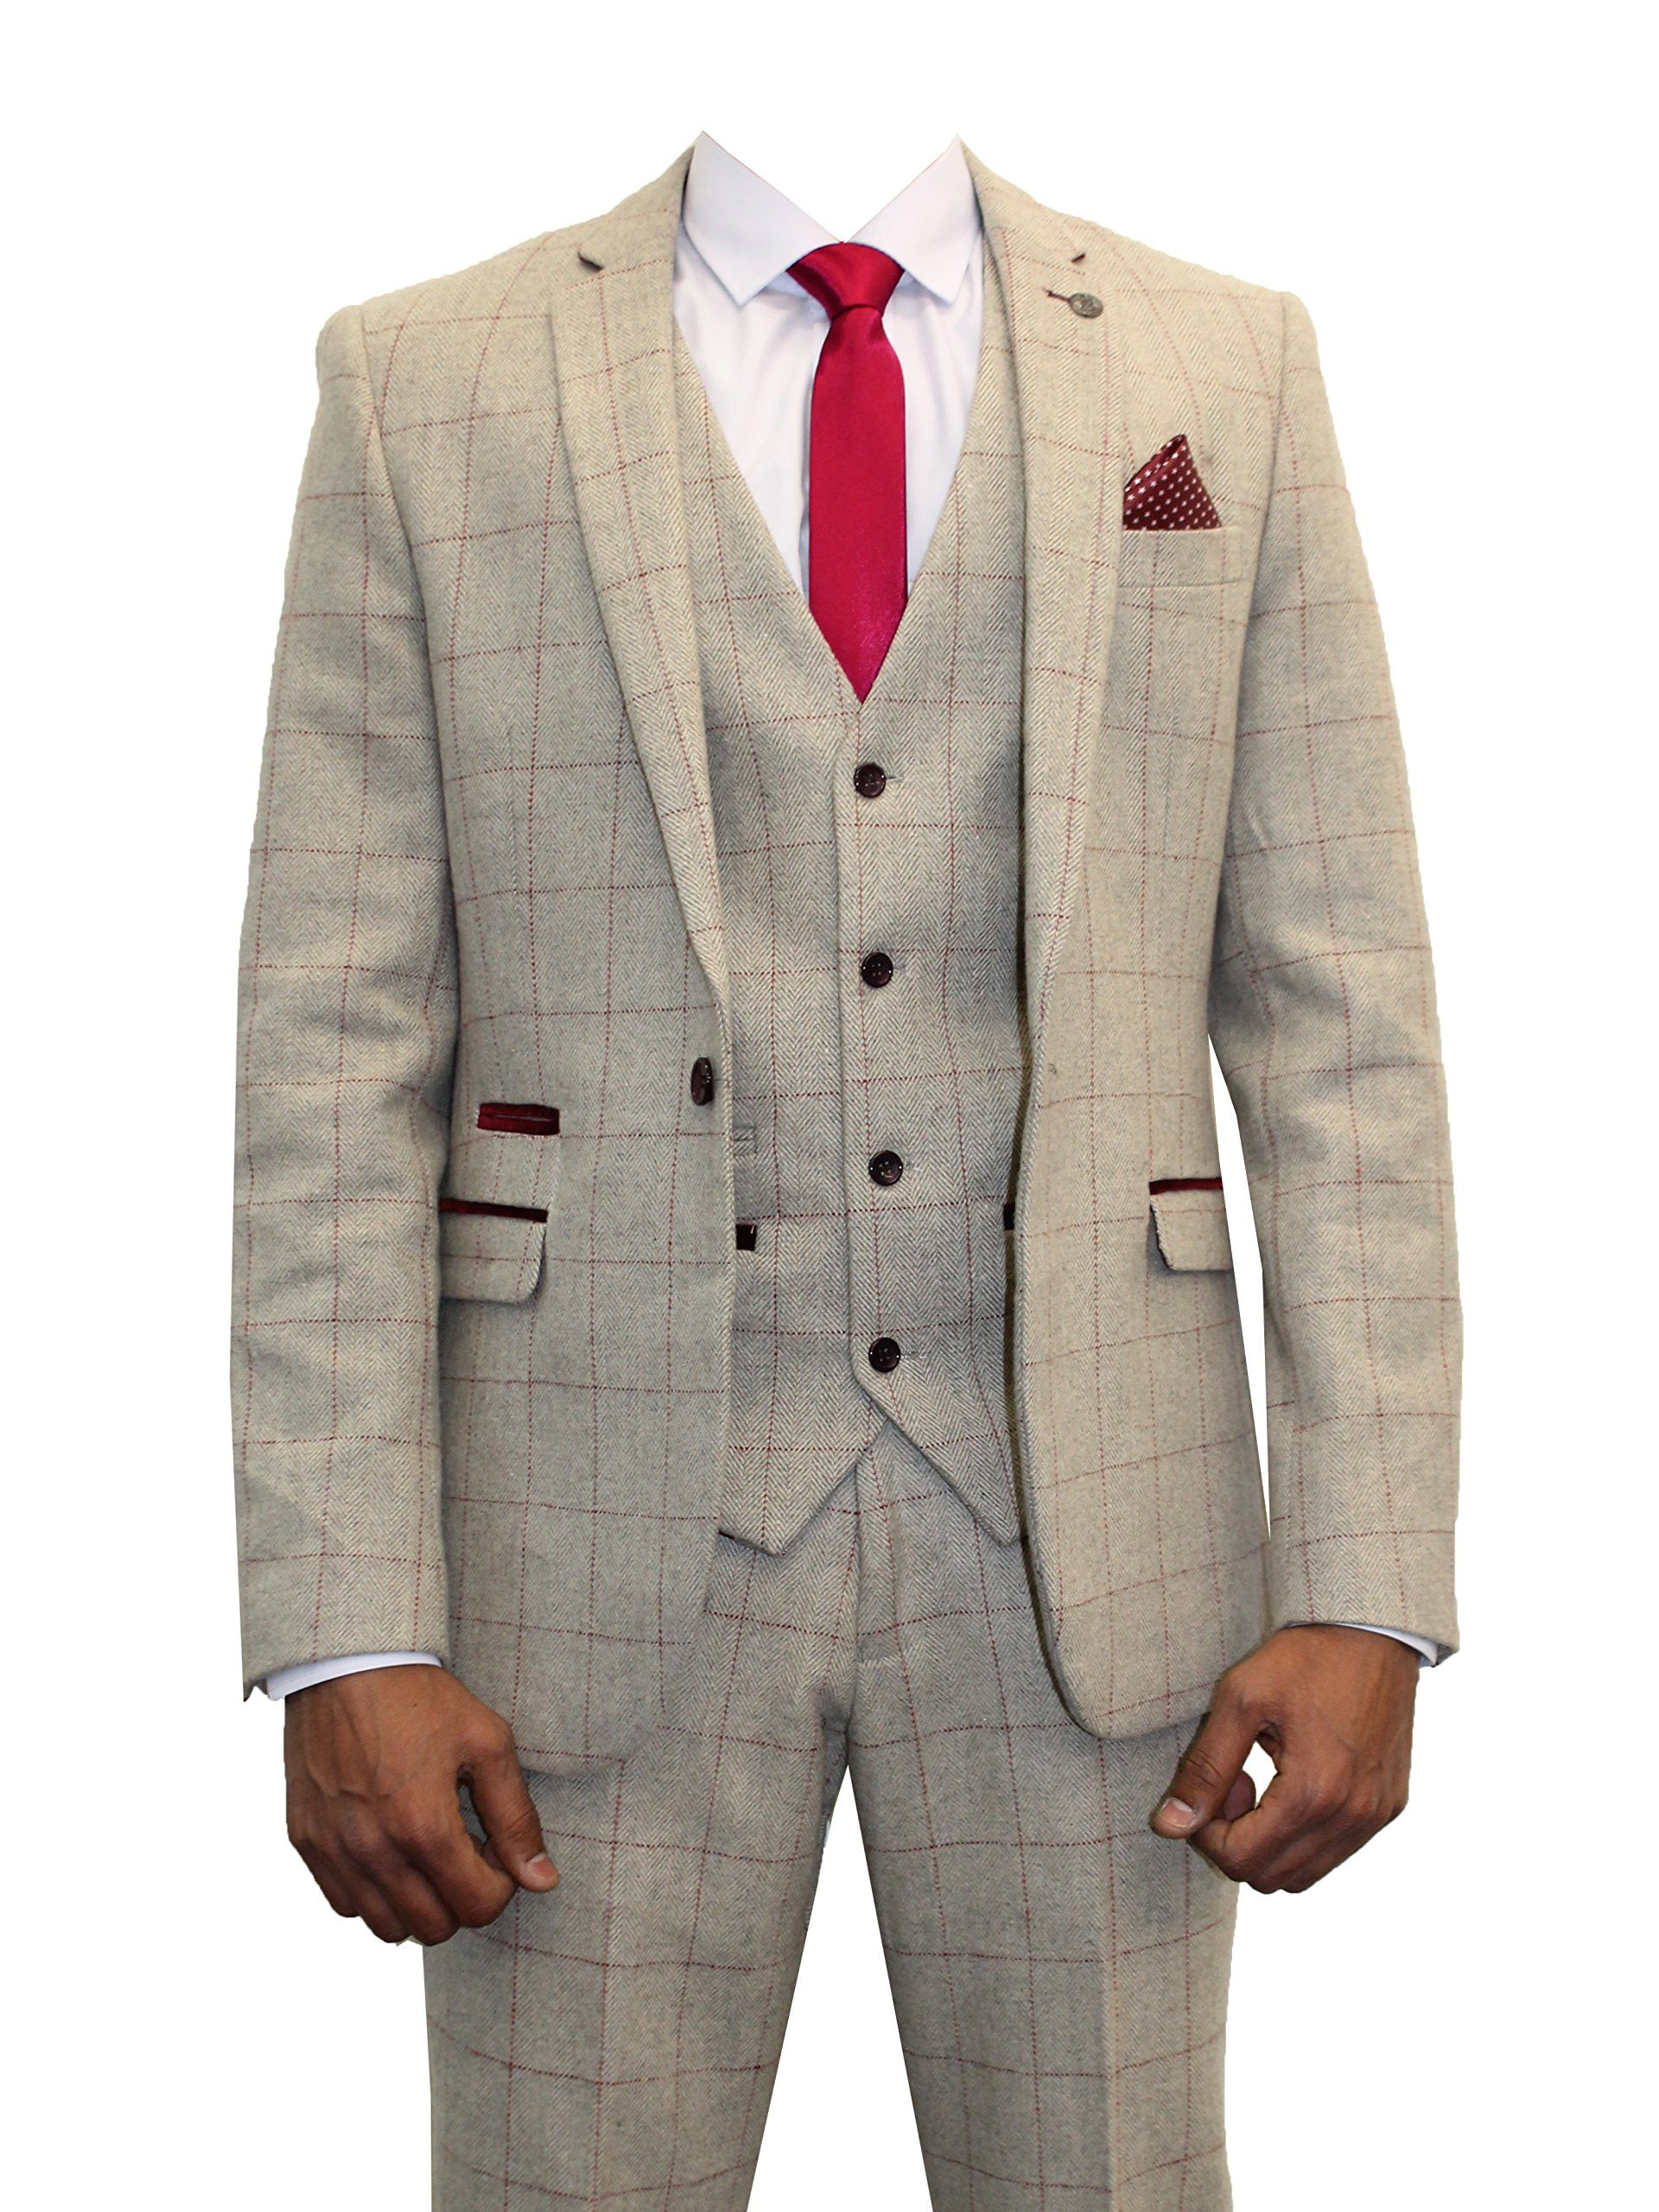 459905bcdf9 Mens Marc Darcy Designer Cream Tweed Herringbone Checkered Vintage 3 Piece  Suit  Amazon.co.uk  Clothing